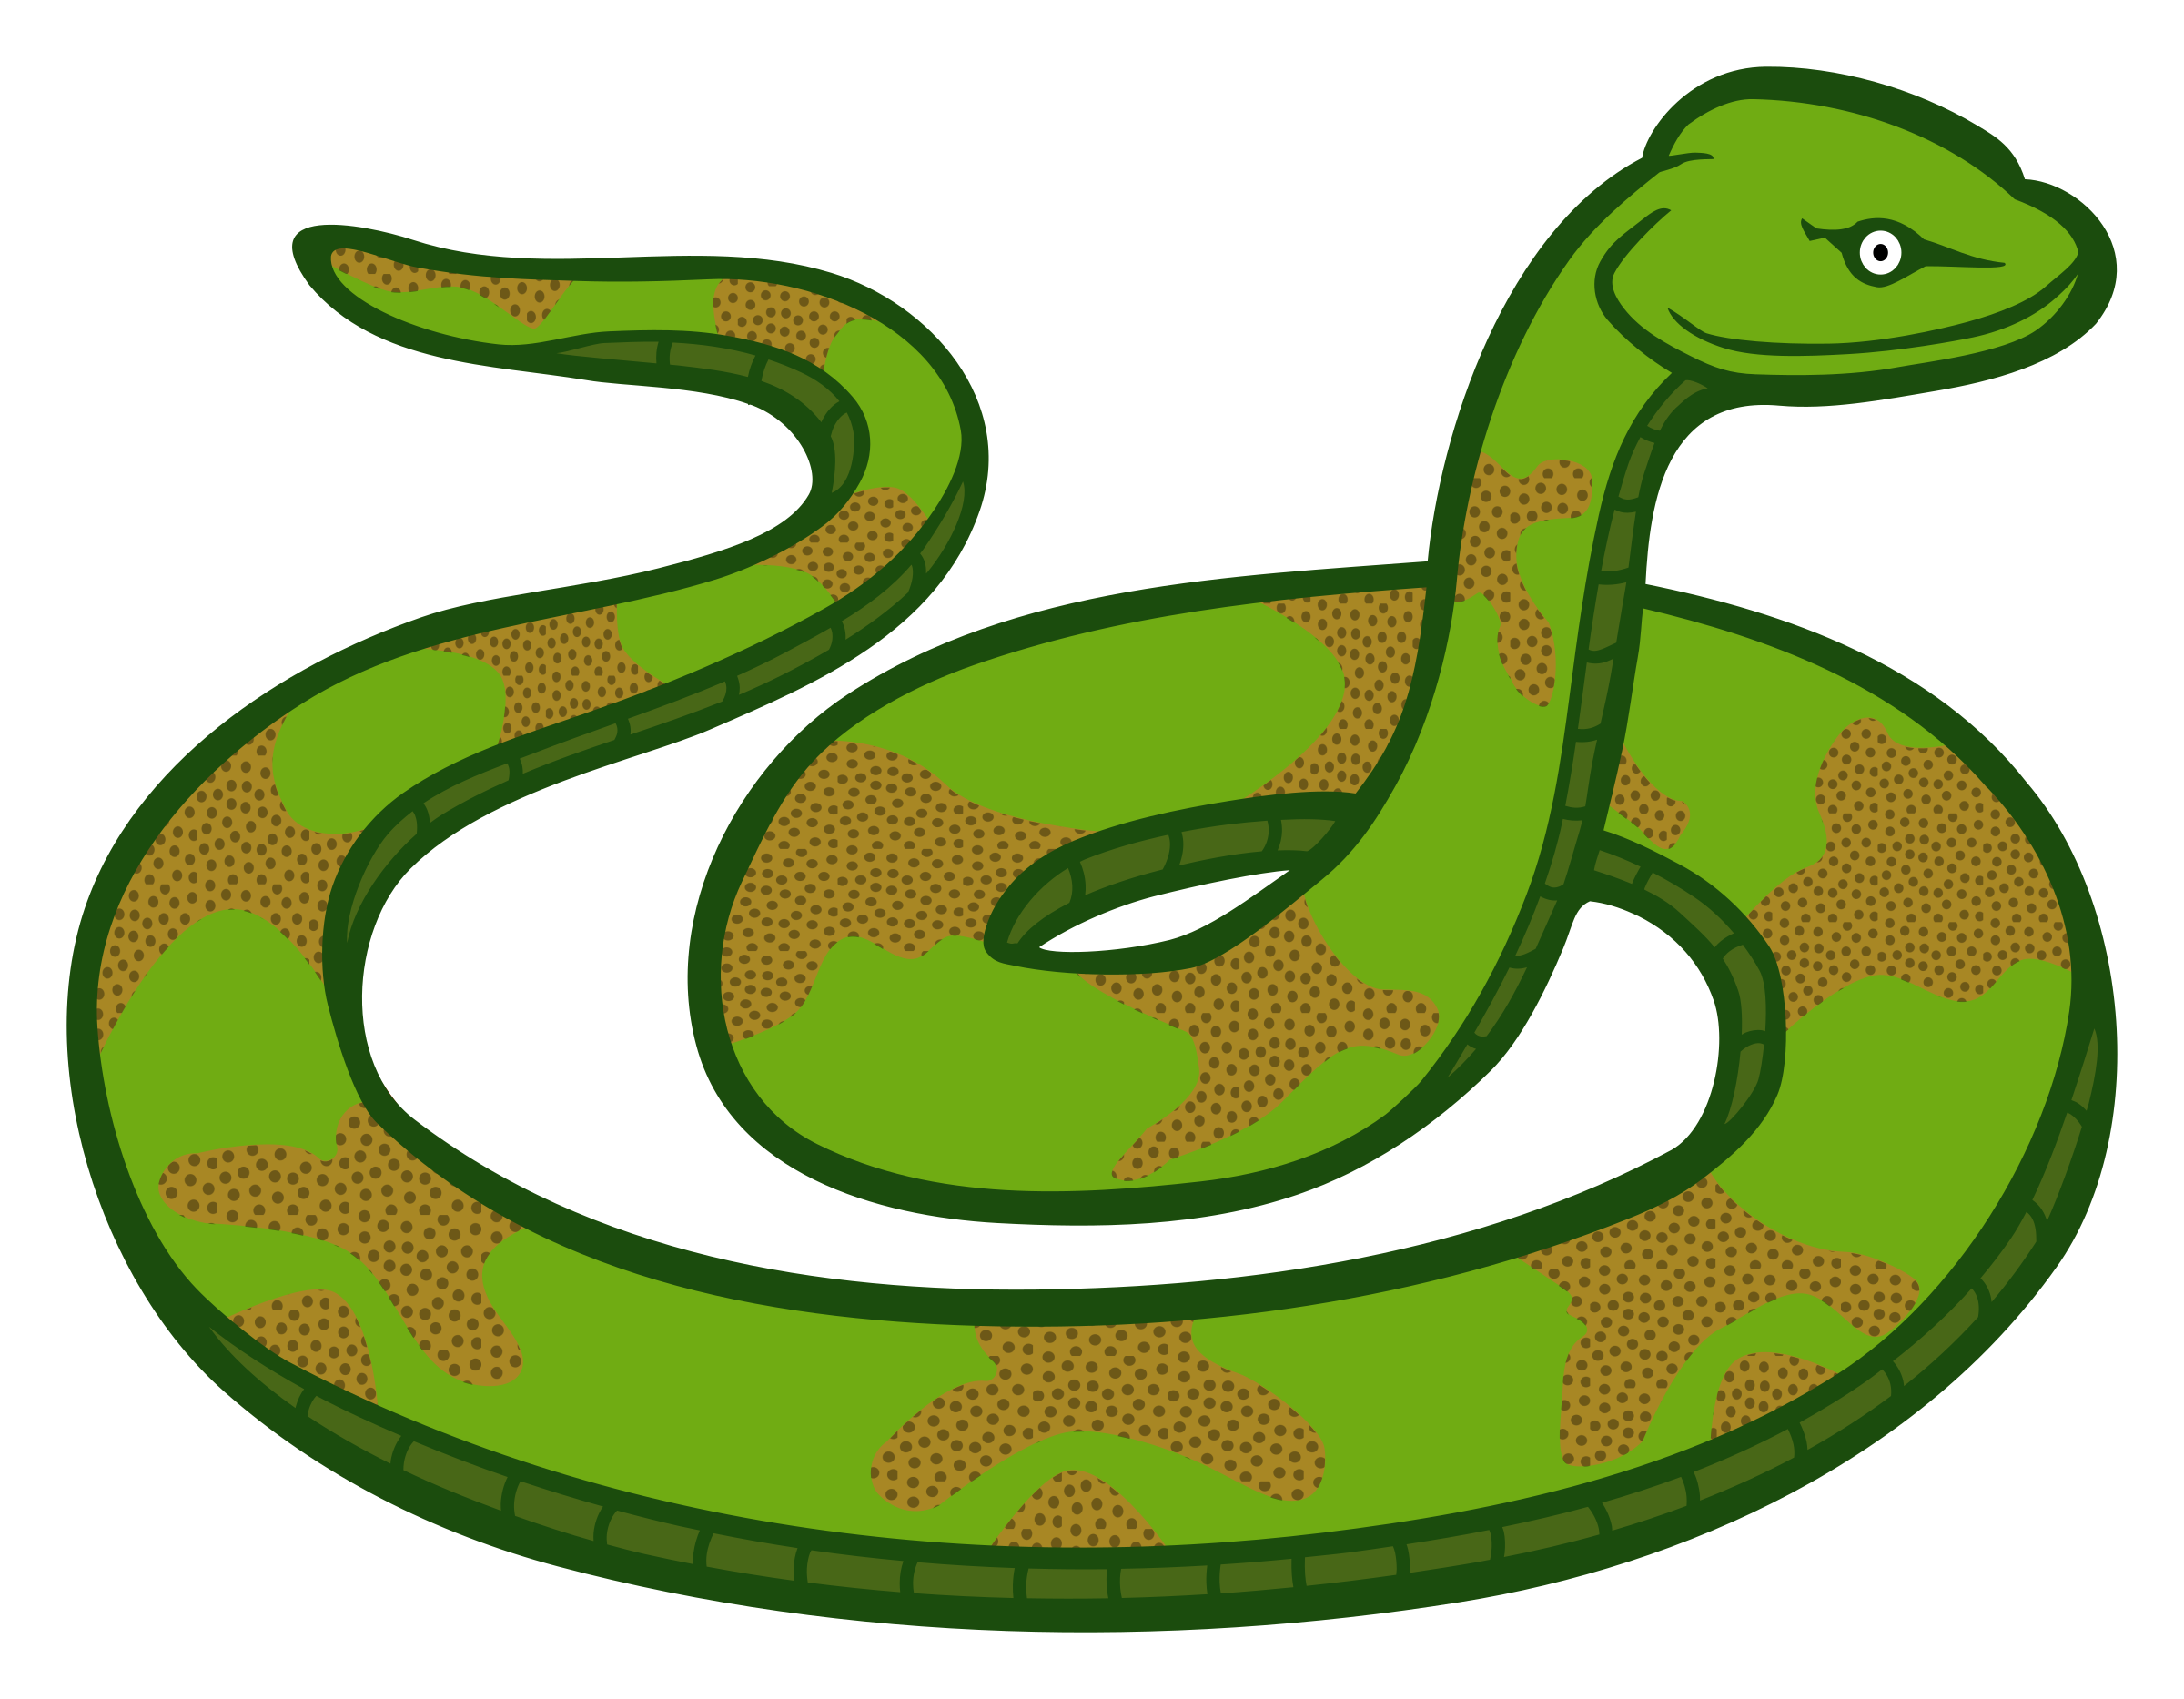 Smooth Green Snake clipart #11, Download drawings